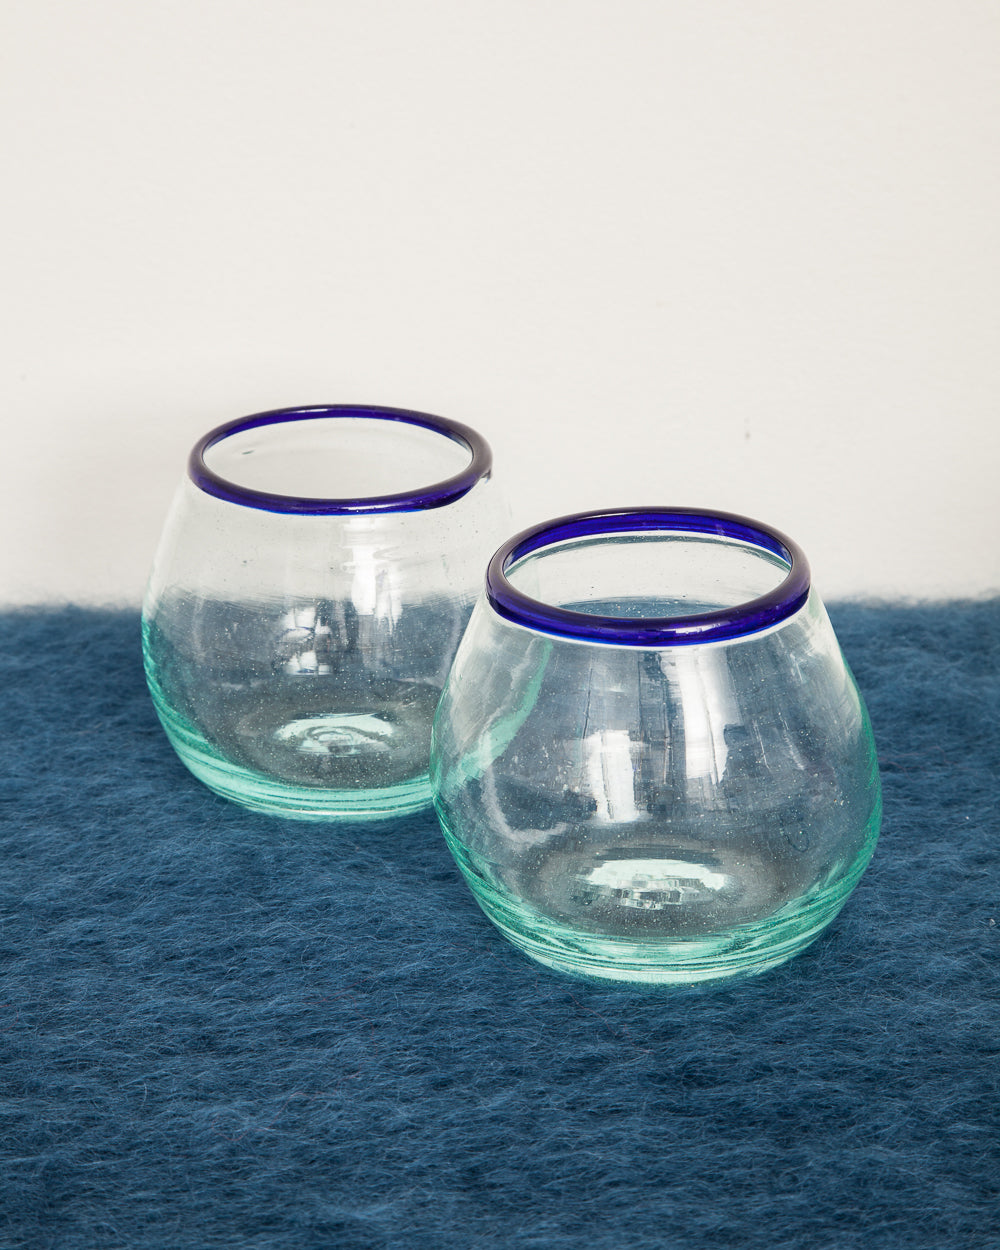 Kenyan Mouth-blown Drinking Glass with Blue Rim